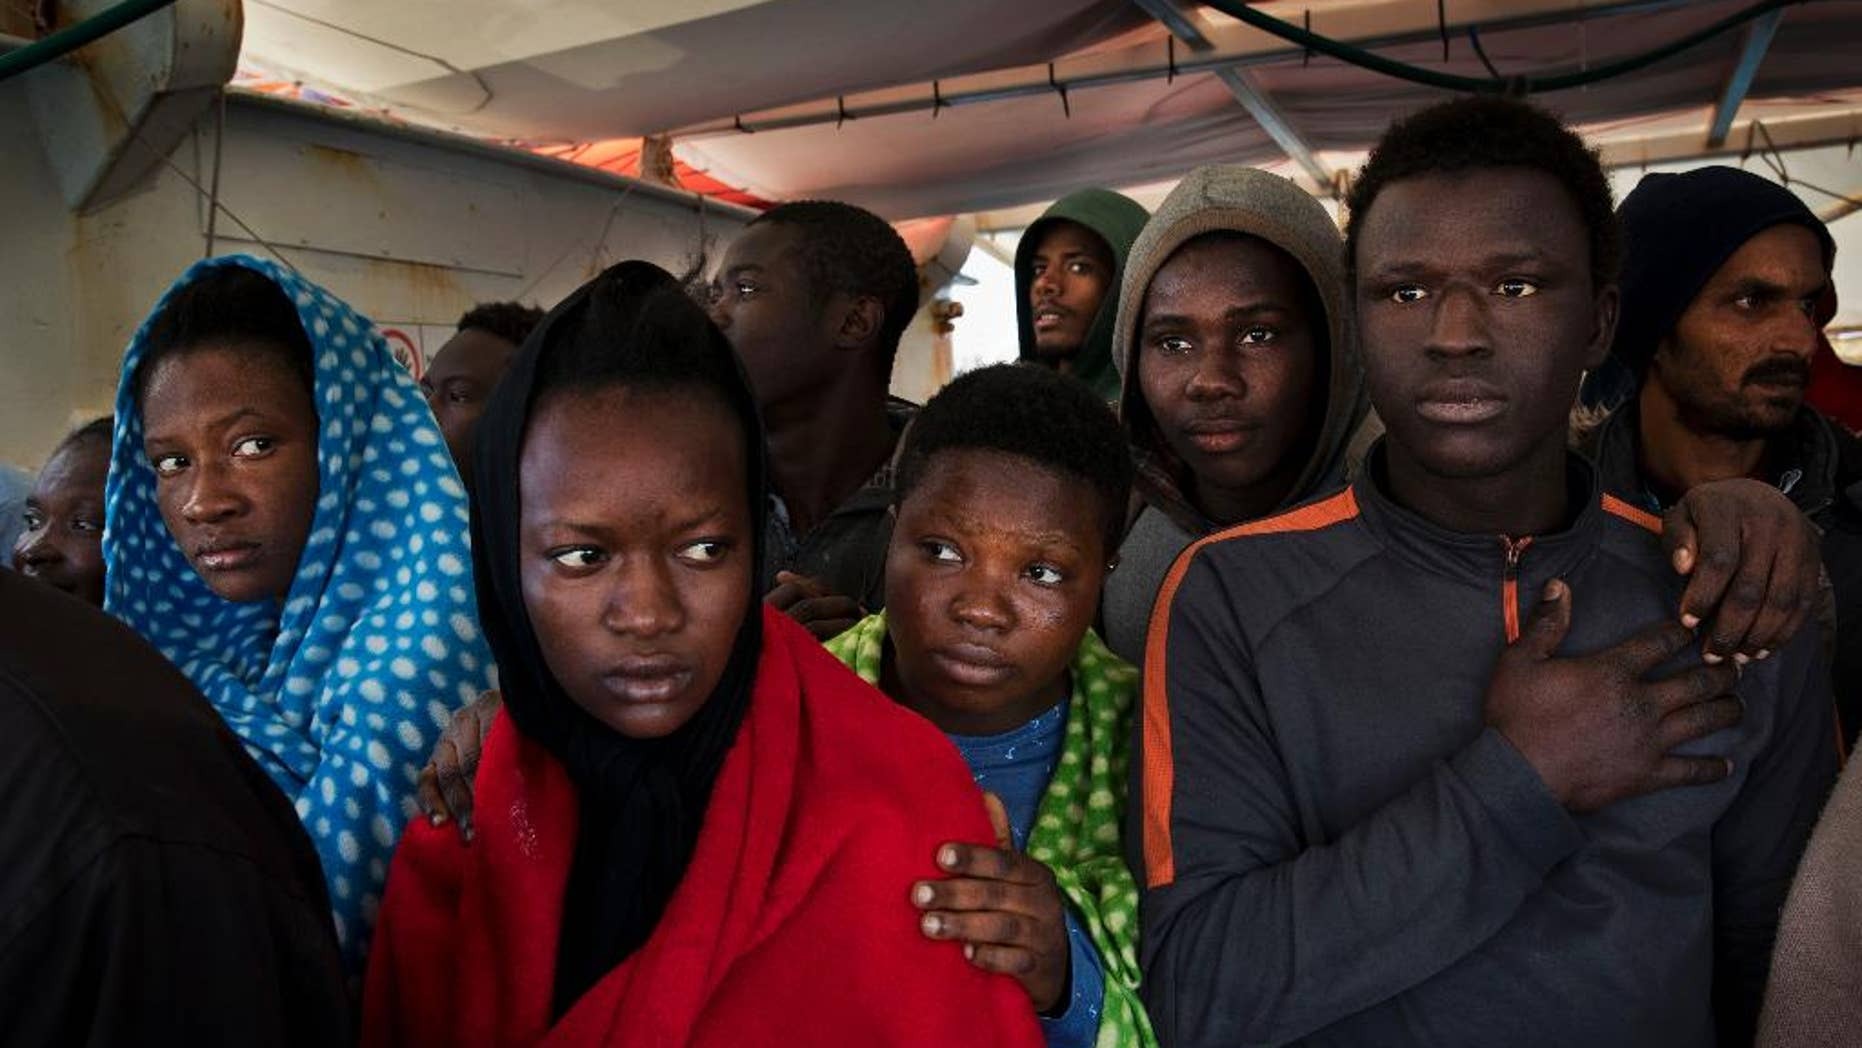 FILE - In this April 8, 2017 file photo, migrants aboard the Golfo Azurro rescue vessel wait to be transferred to Italian authorities in Trapani harbor, in the Italian island of Sicily. Most, though, don't understand that this could be just one more step in an impossible dream. Many are sent to government-run migrant camps. Others, depending on international agreements, are sent back home. (AP Photo/Bernat Armangue, File)